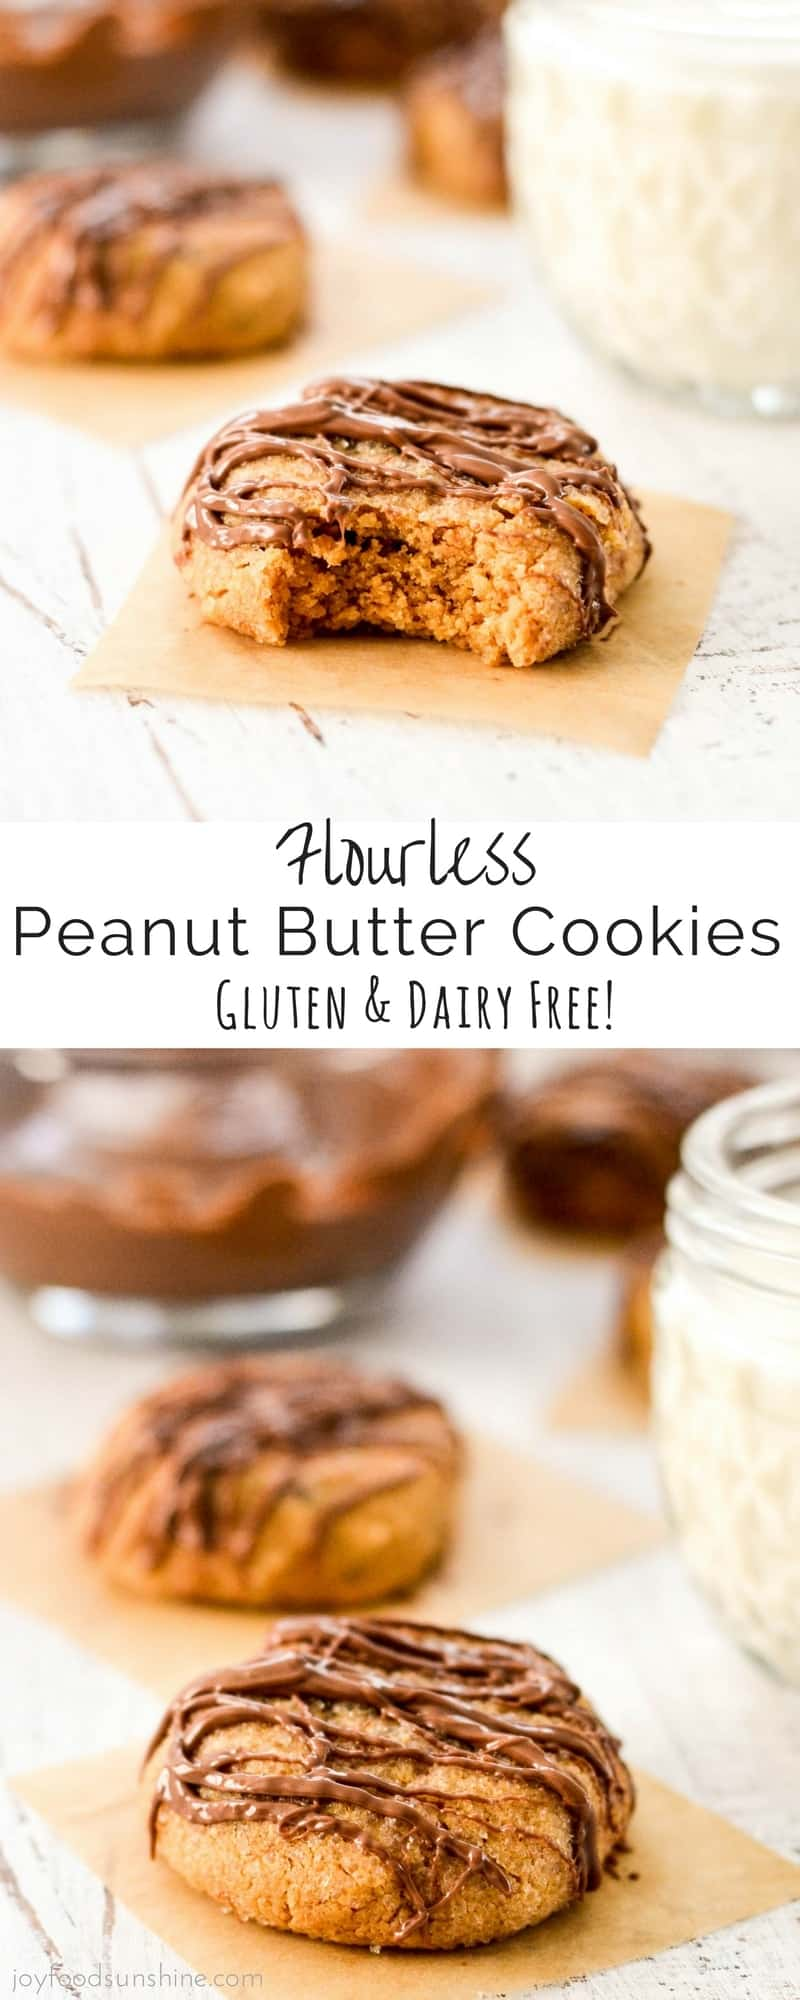 Flourless Peanut Butter Cookies! The easiest recipe ever made with only 6 ingredients and ready in 15 minutes! Gluten & dairy free!